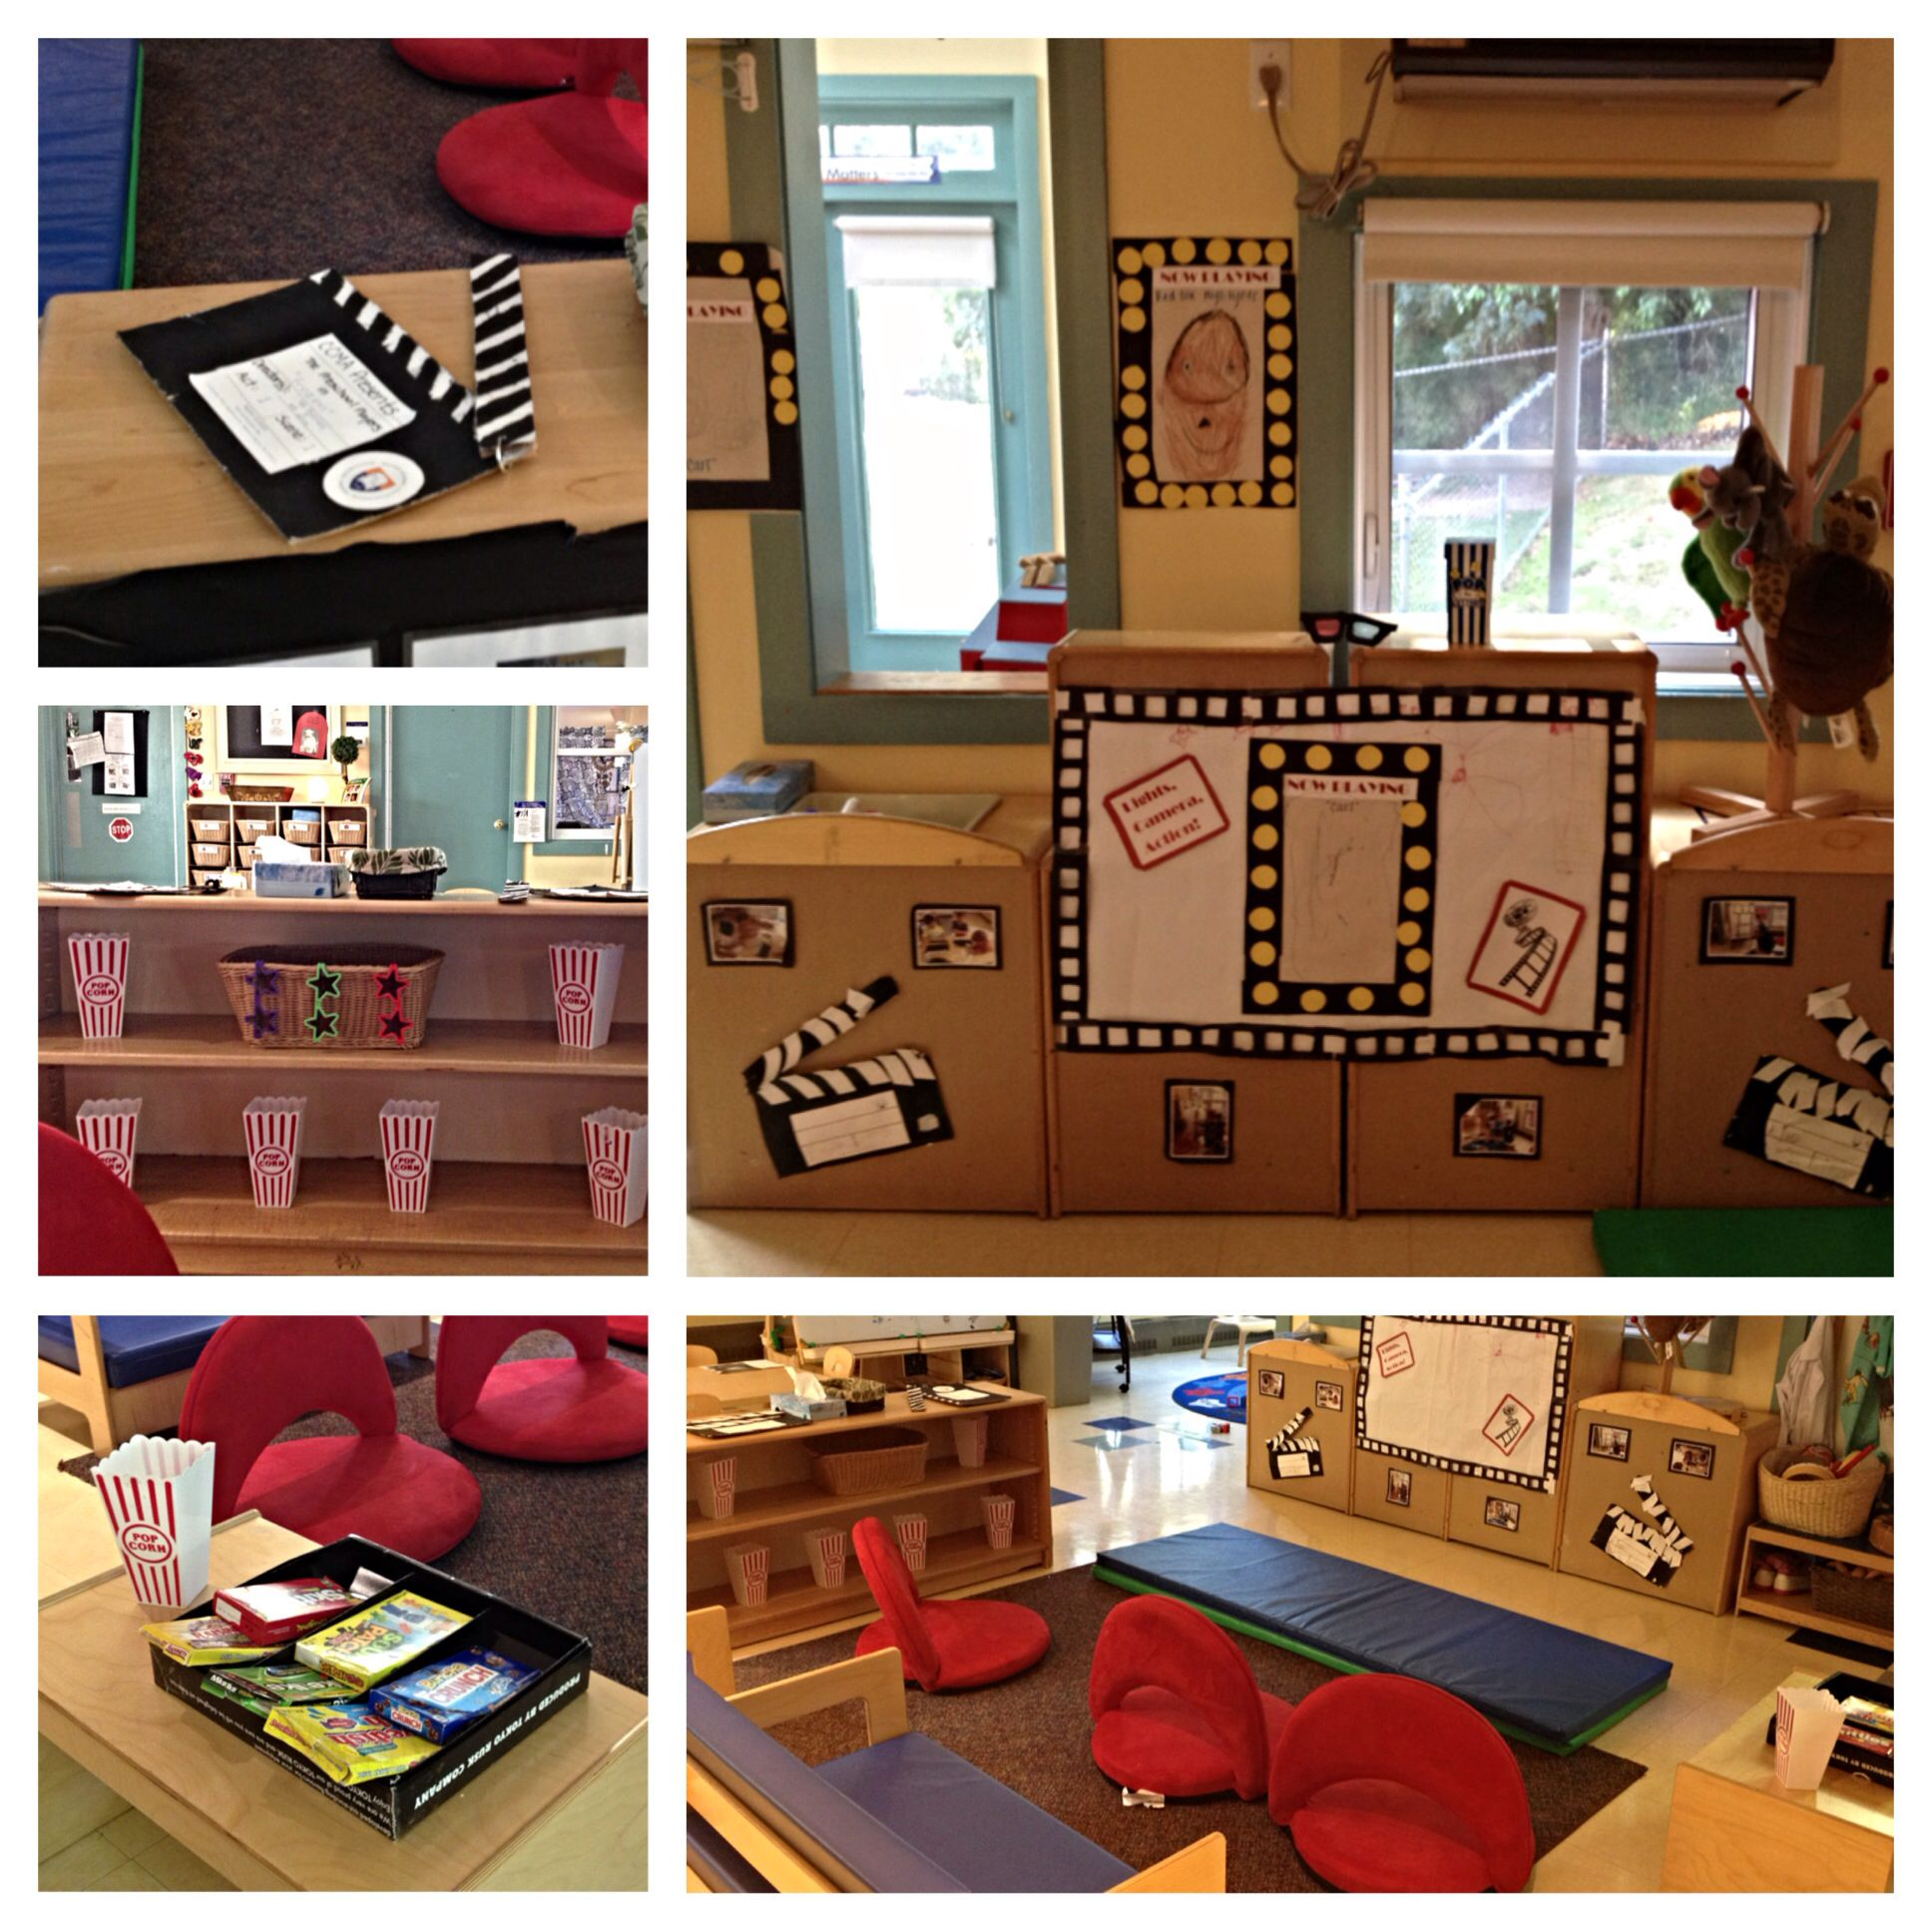 Lights, camera, action! Turn dramatic play into a movie